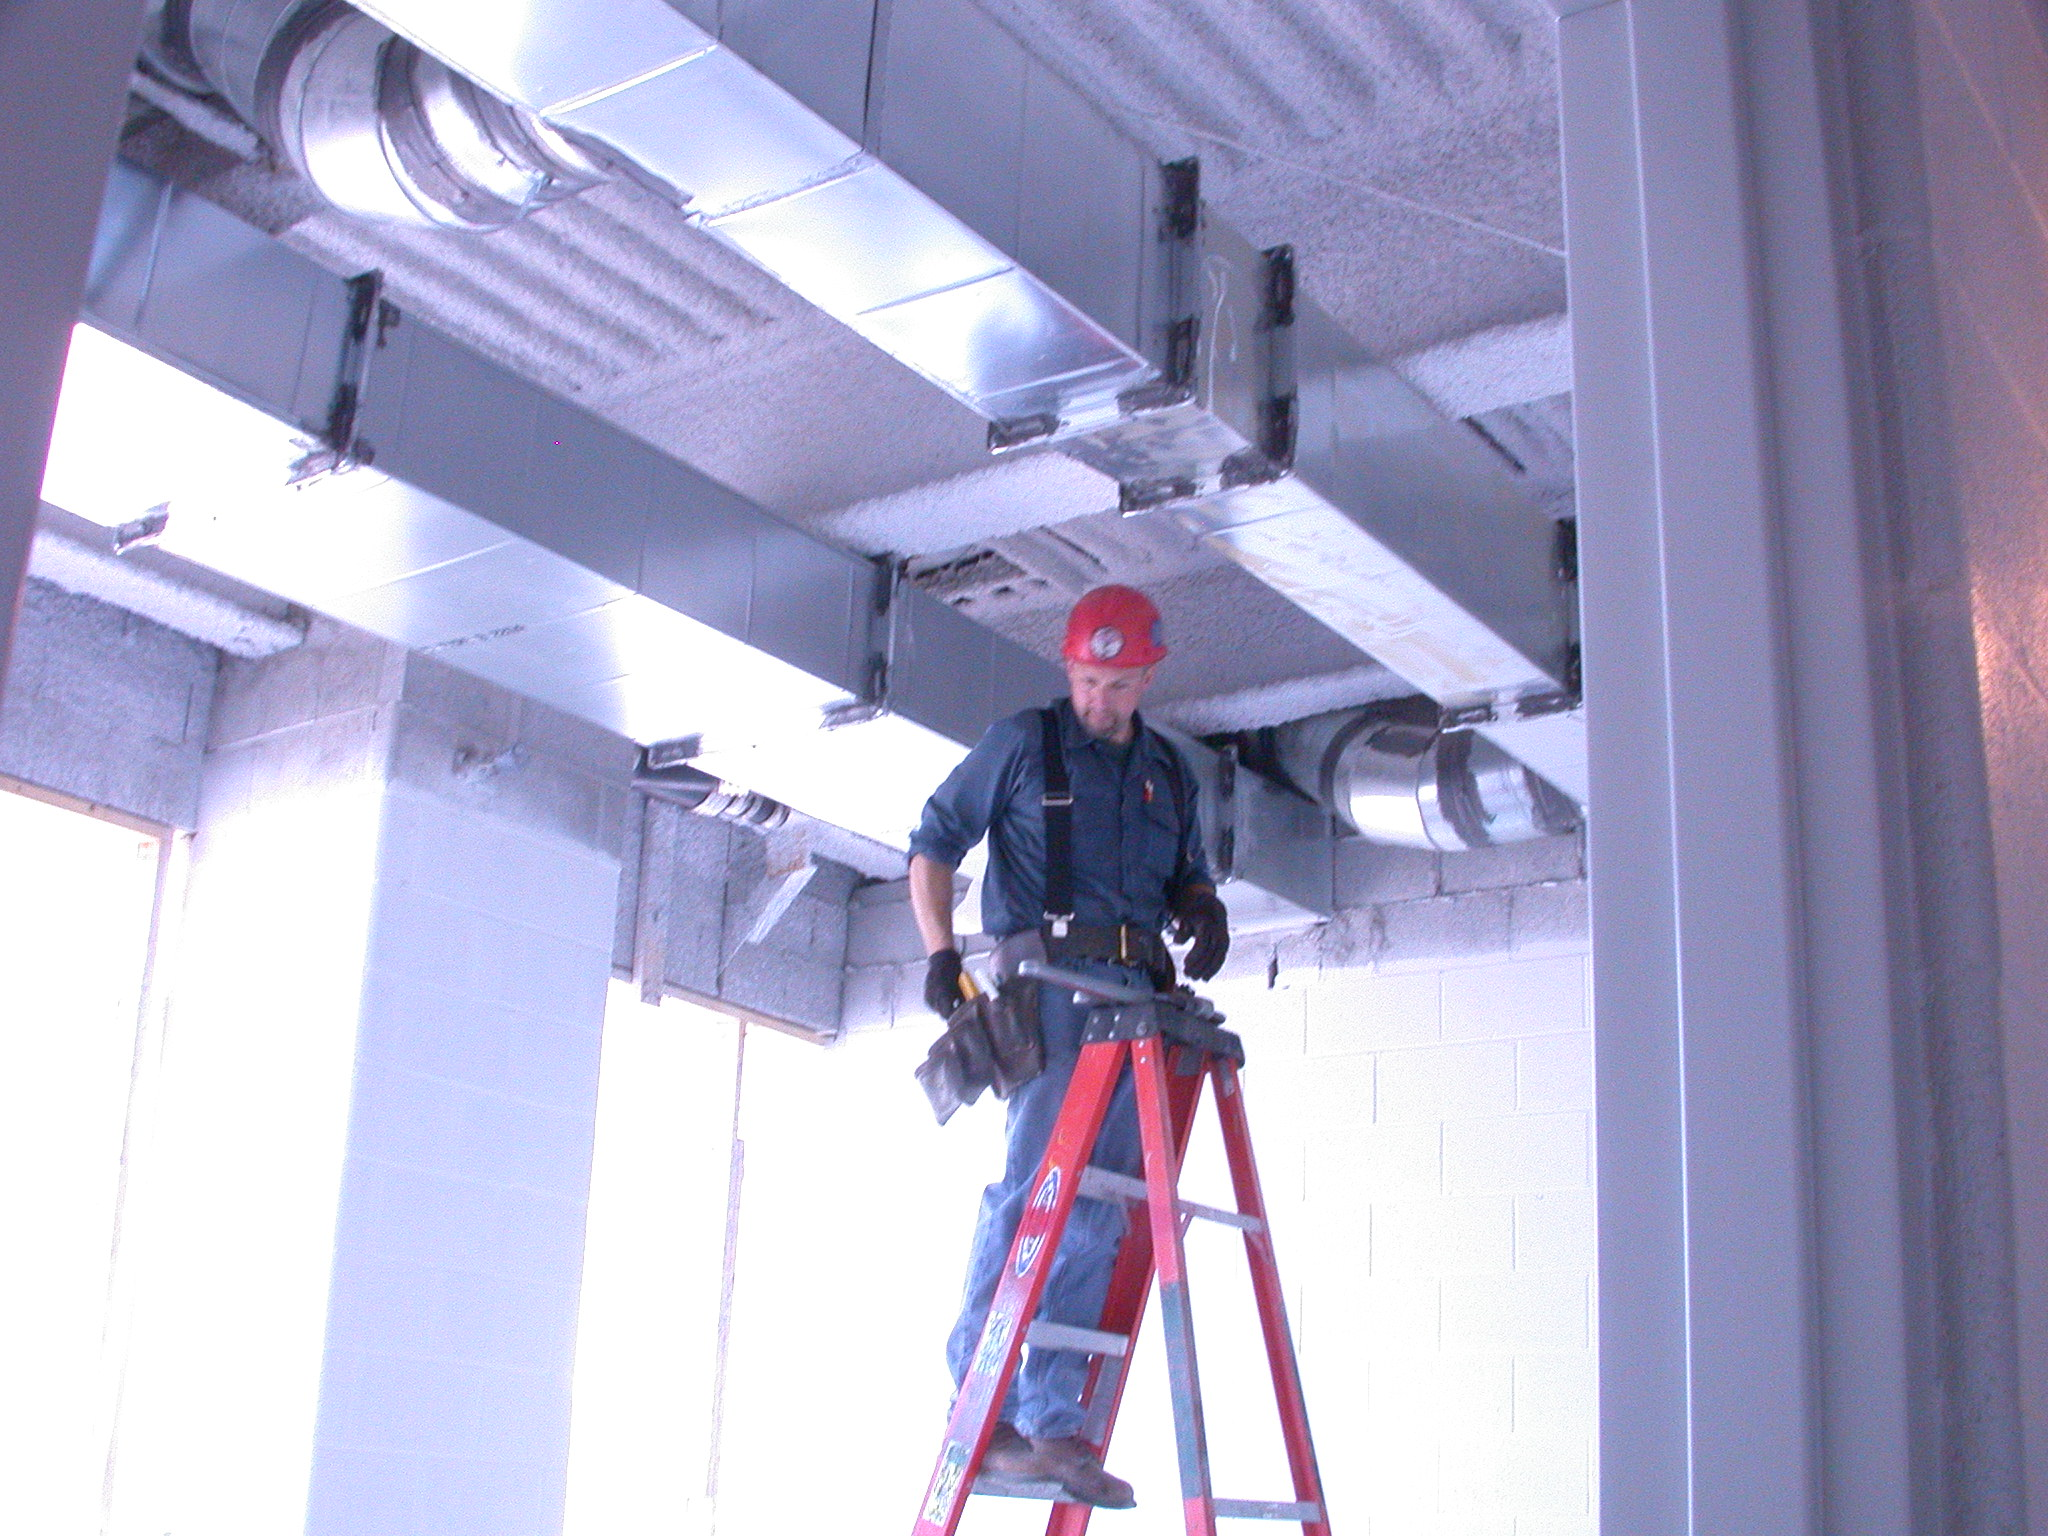 Fire Sprinkler Installation And Special Hazards